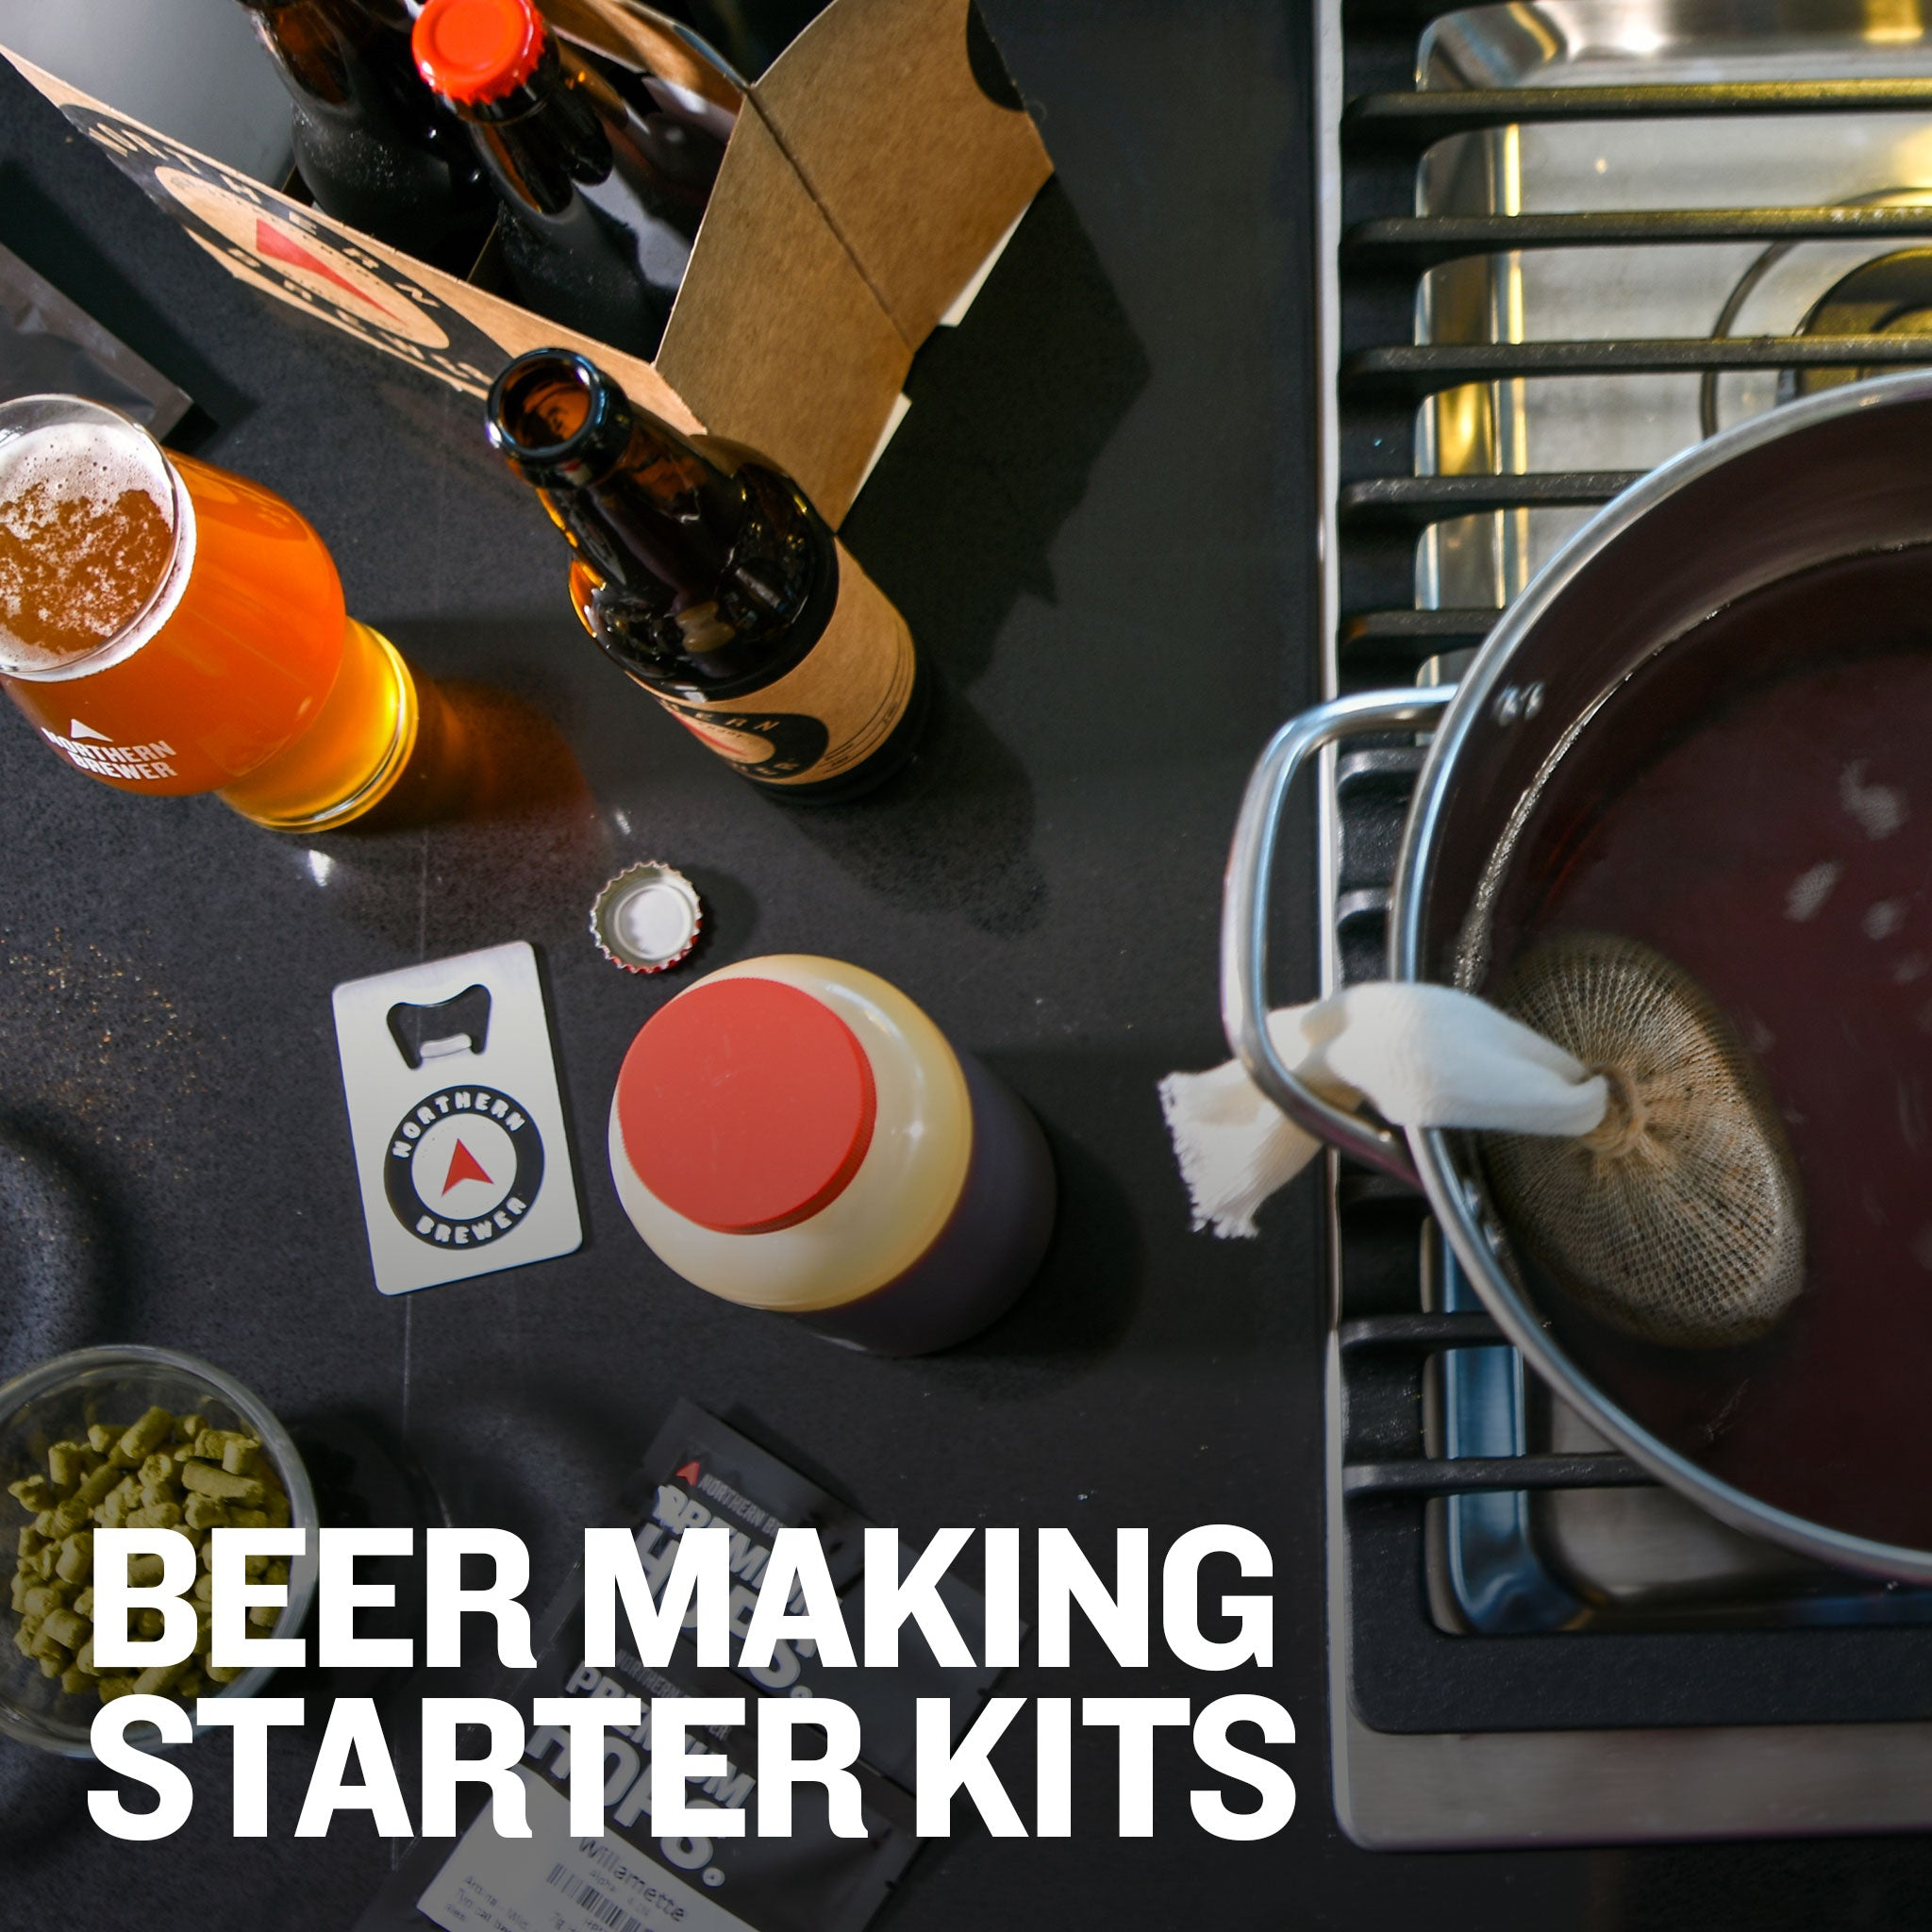 Northern Brewer Beer Making Starter Kits